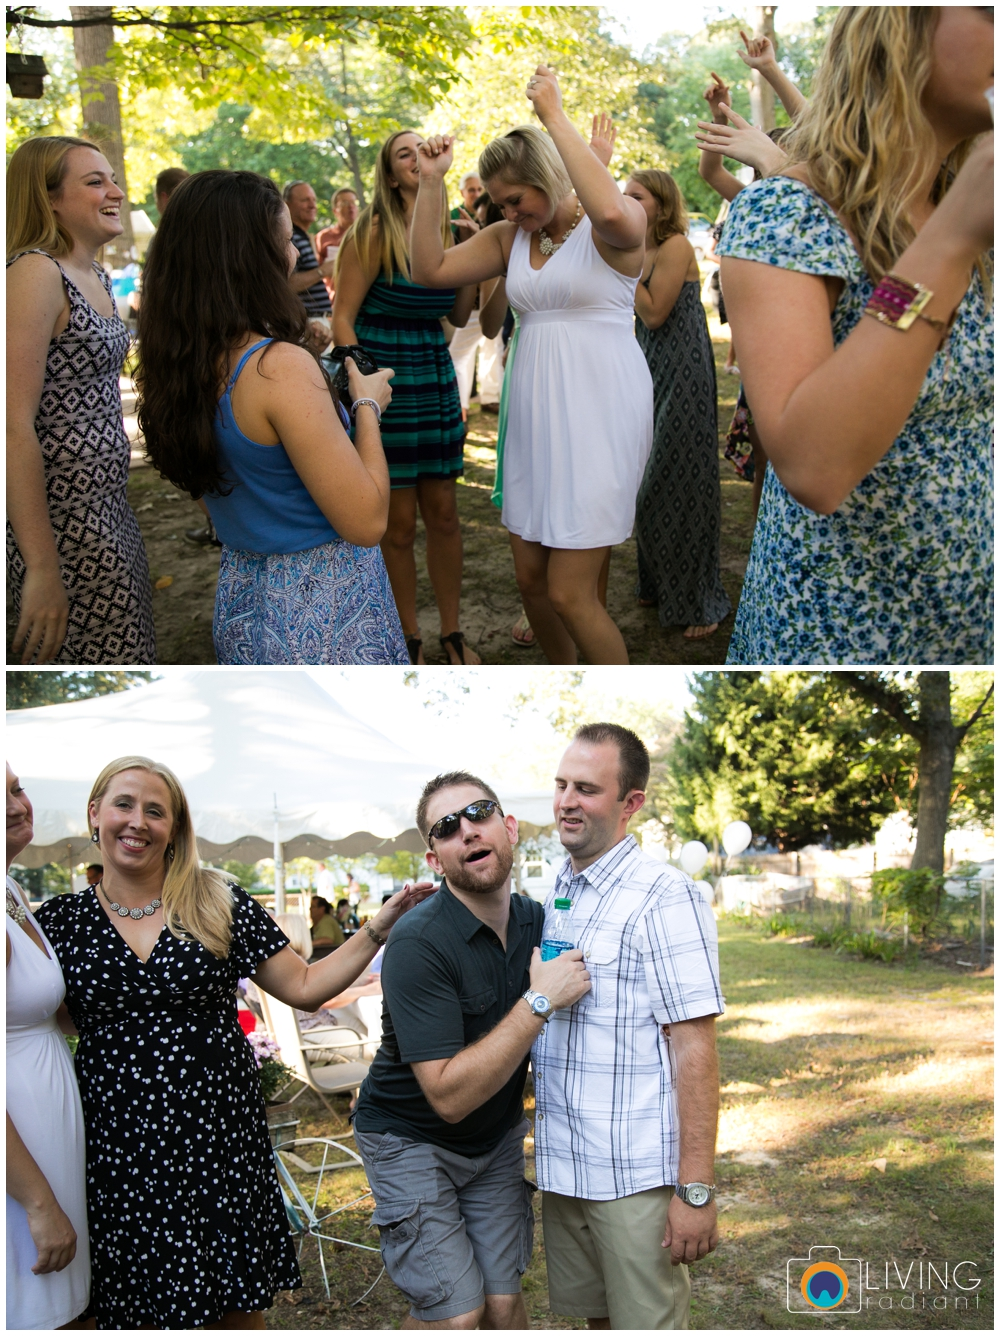 brent-laura-engagement-party-baltimore-living-radiant-photography_0019.jpg